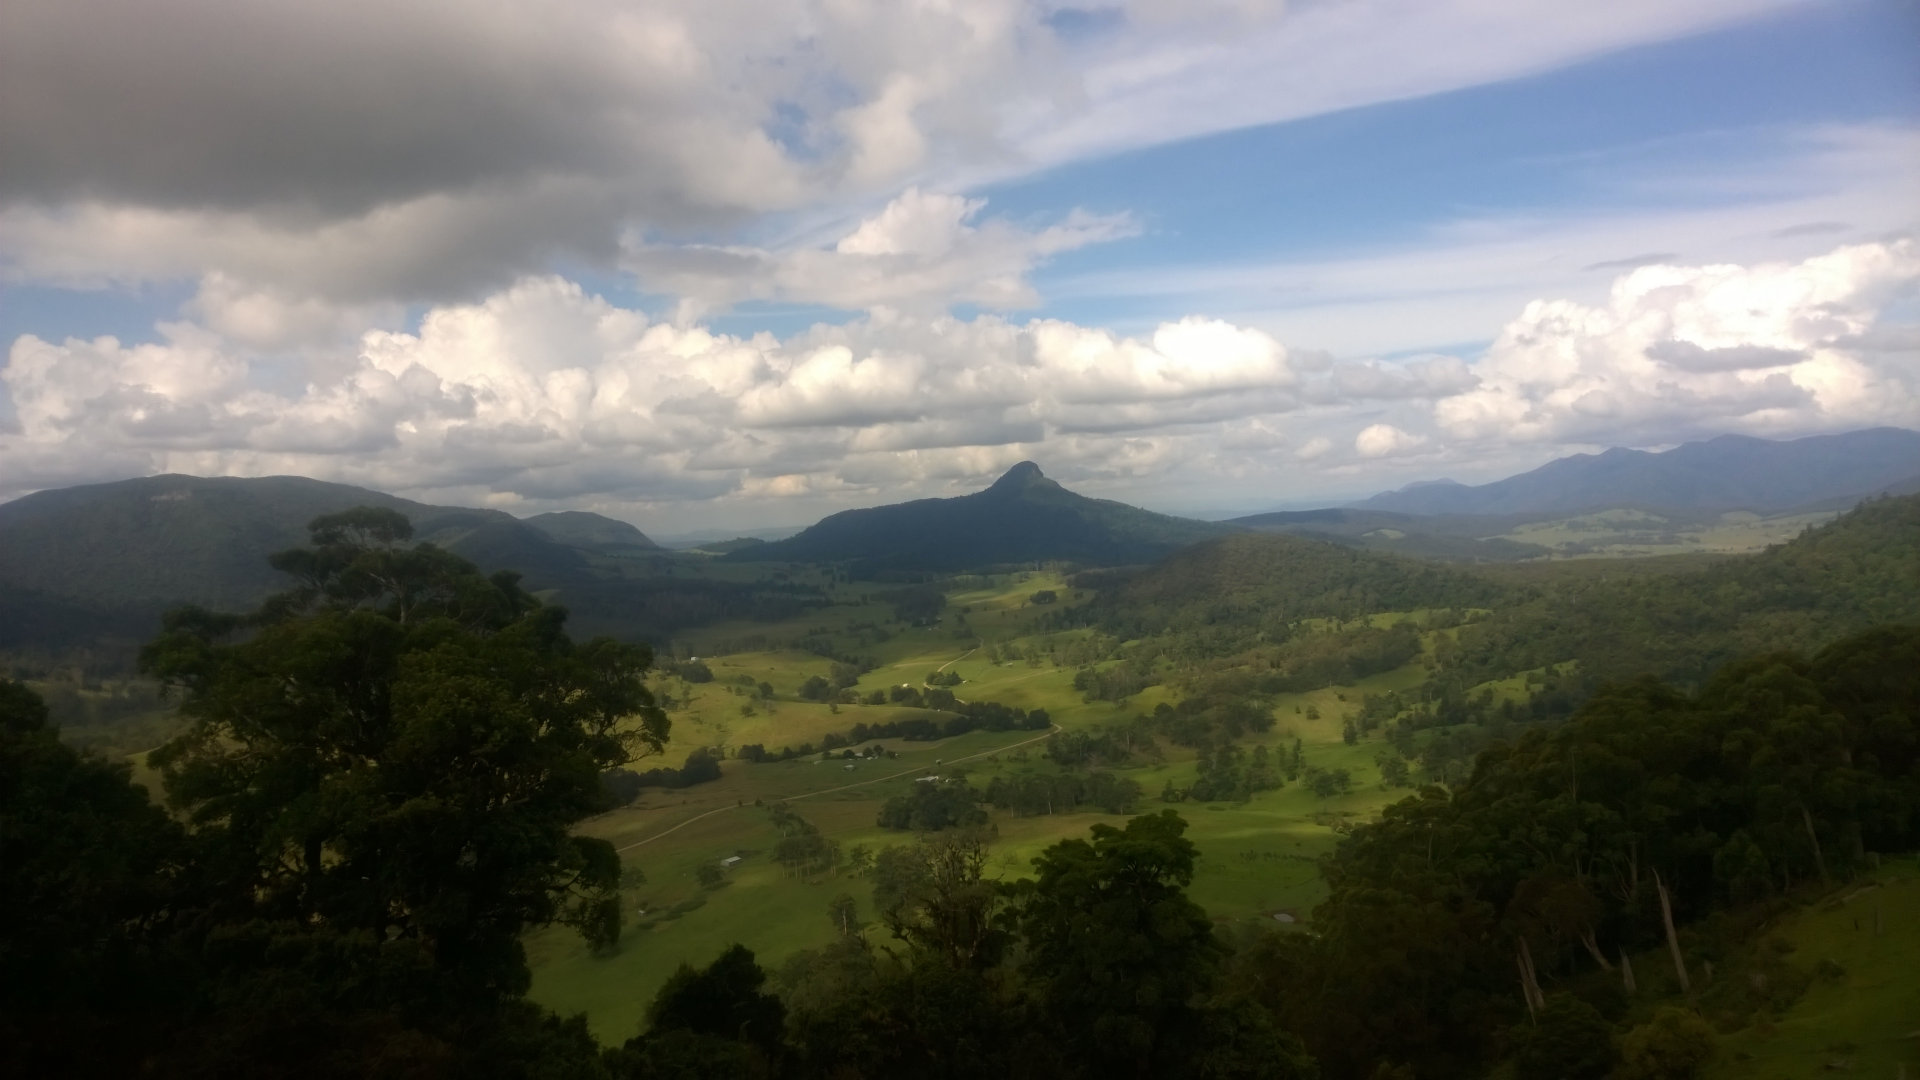 View from Carr's Lookout across the head of the Condamine River, and mountains in the Scenic Rim region. The lookout is along The Falls Drive on Spring Creek Road.